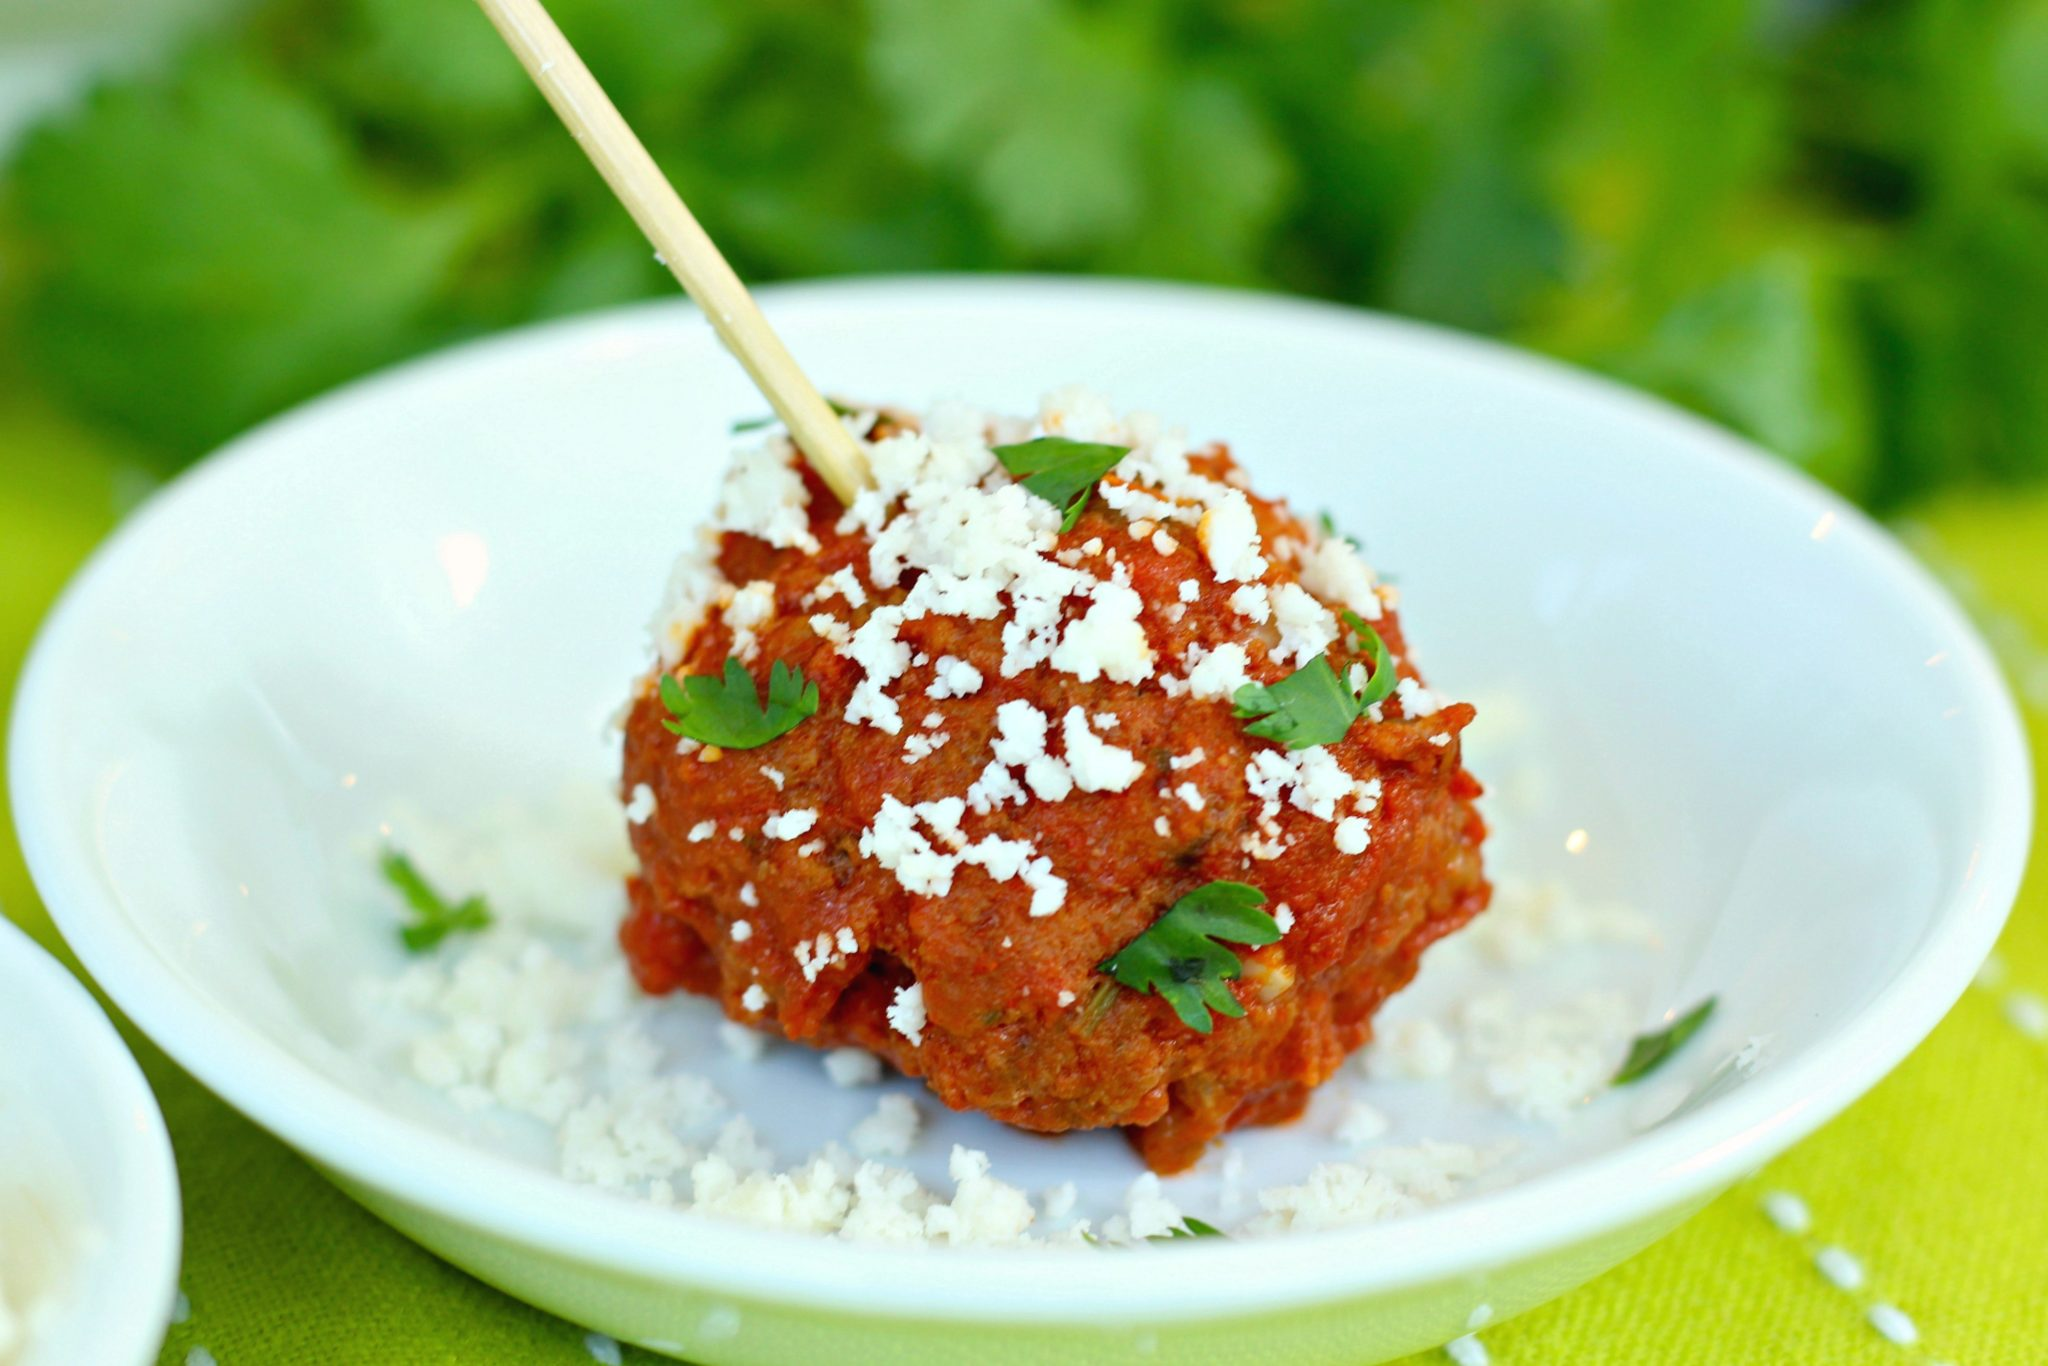 Mexican Cocktail Meatballs ~ Switch up the standard cocktail meatball with a spicy Mexican twist, easily made and kept warm in the slow cooker ~ The Complete Savorist #goautentico #socu ad